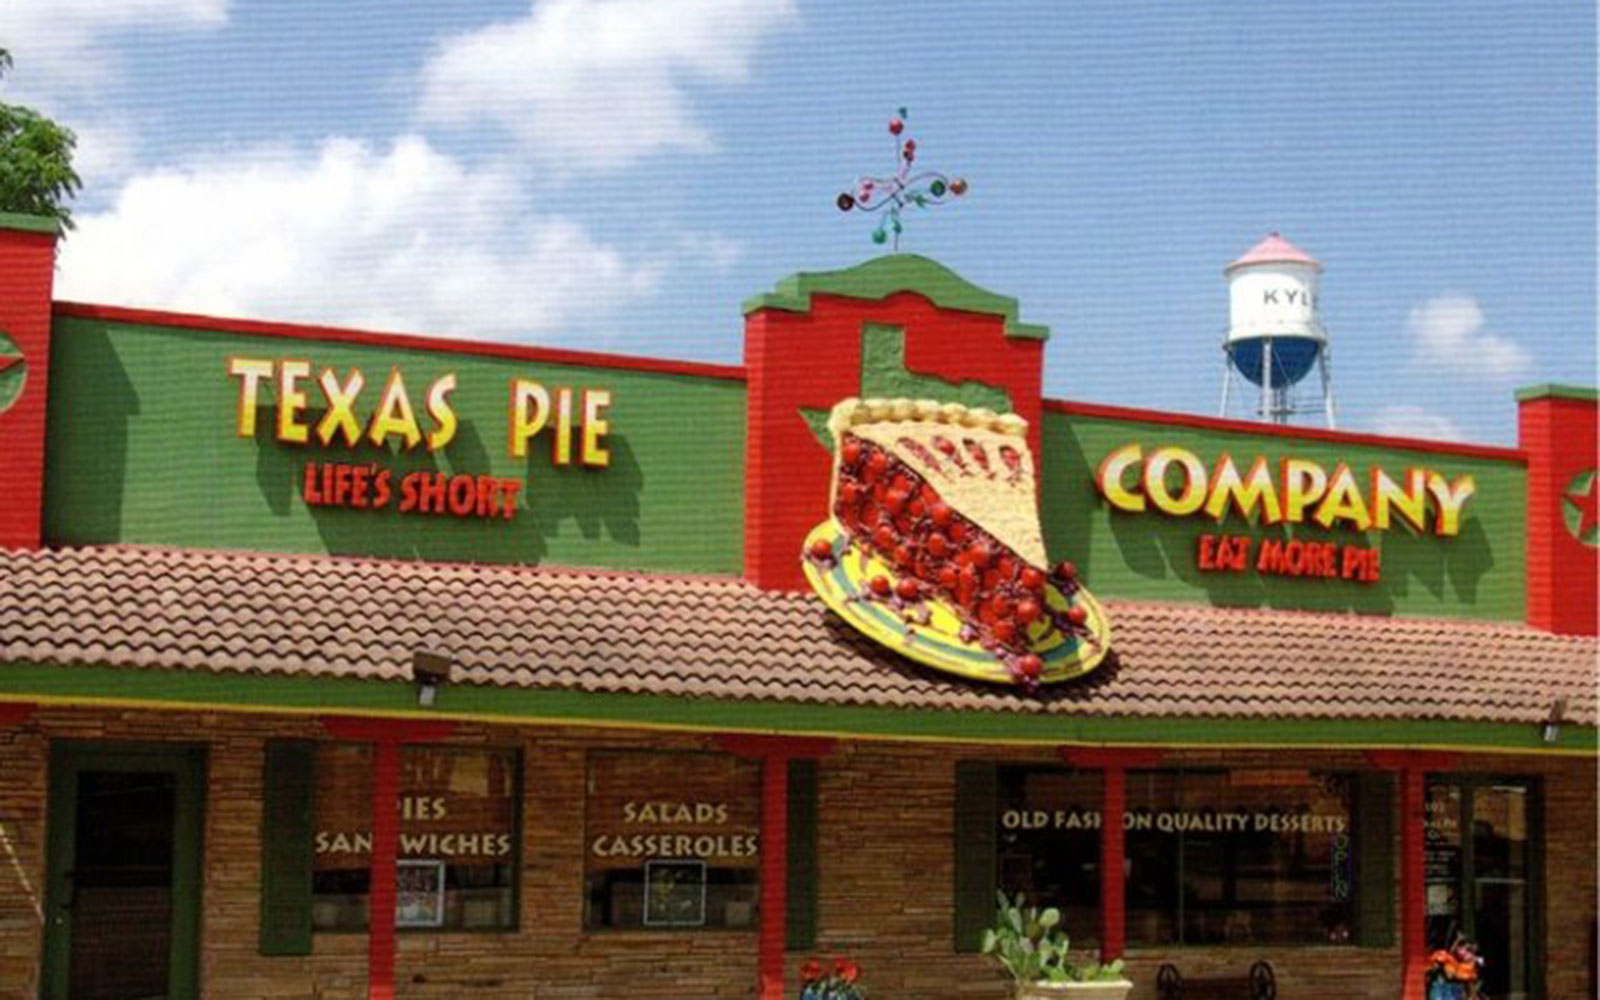 The 15 Best Small-Town Bakeries: The Texas Pie Company in Kyle, Texas